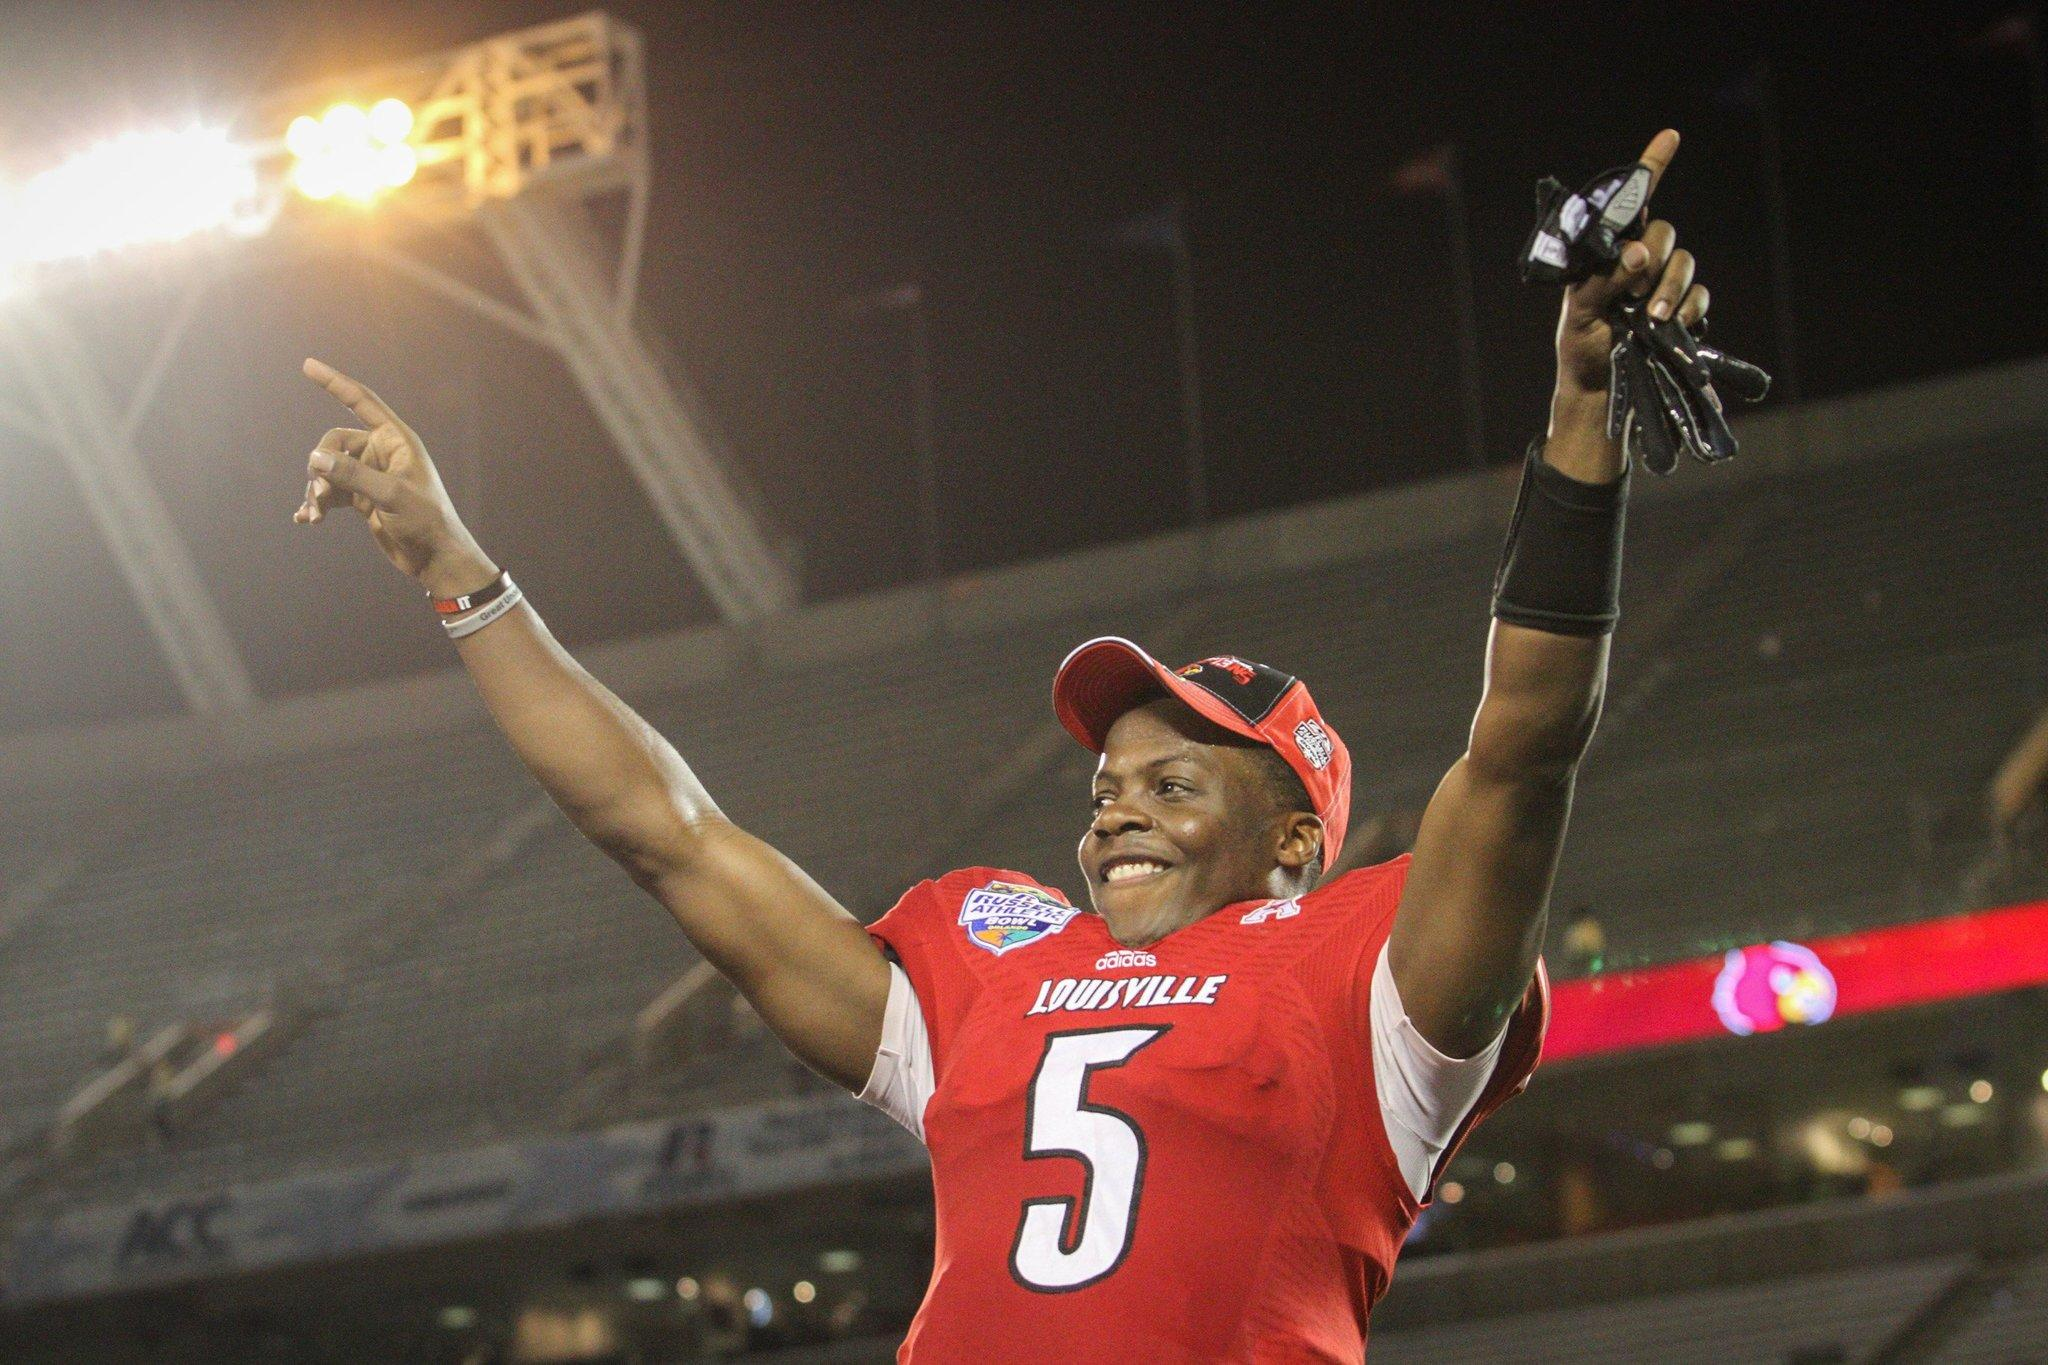 Louisville quarterback Teddy Bridgewater celebrates after defeating Miami, 36-9, in the Russell Athletic Bowl.